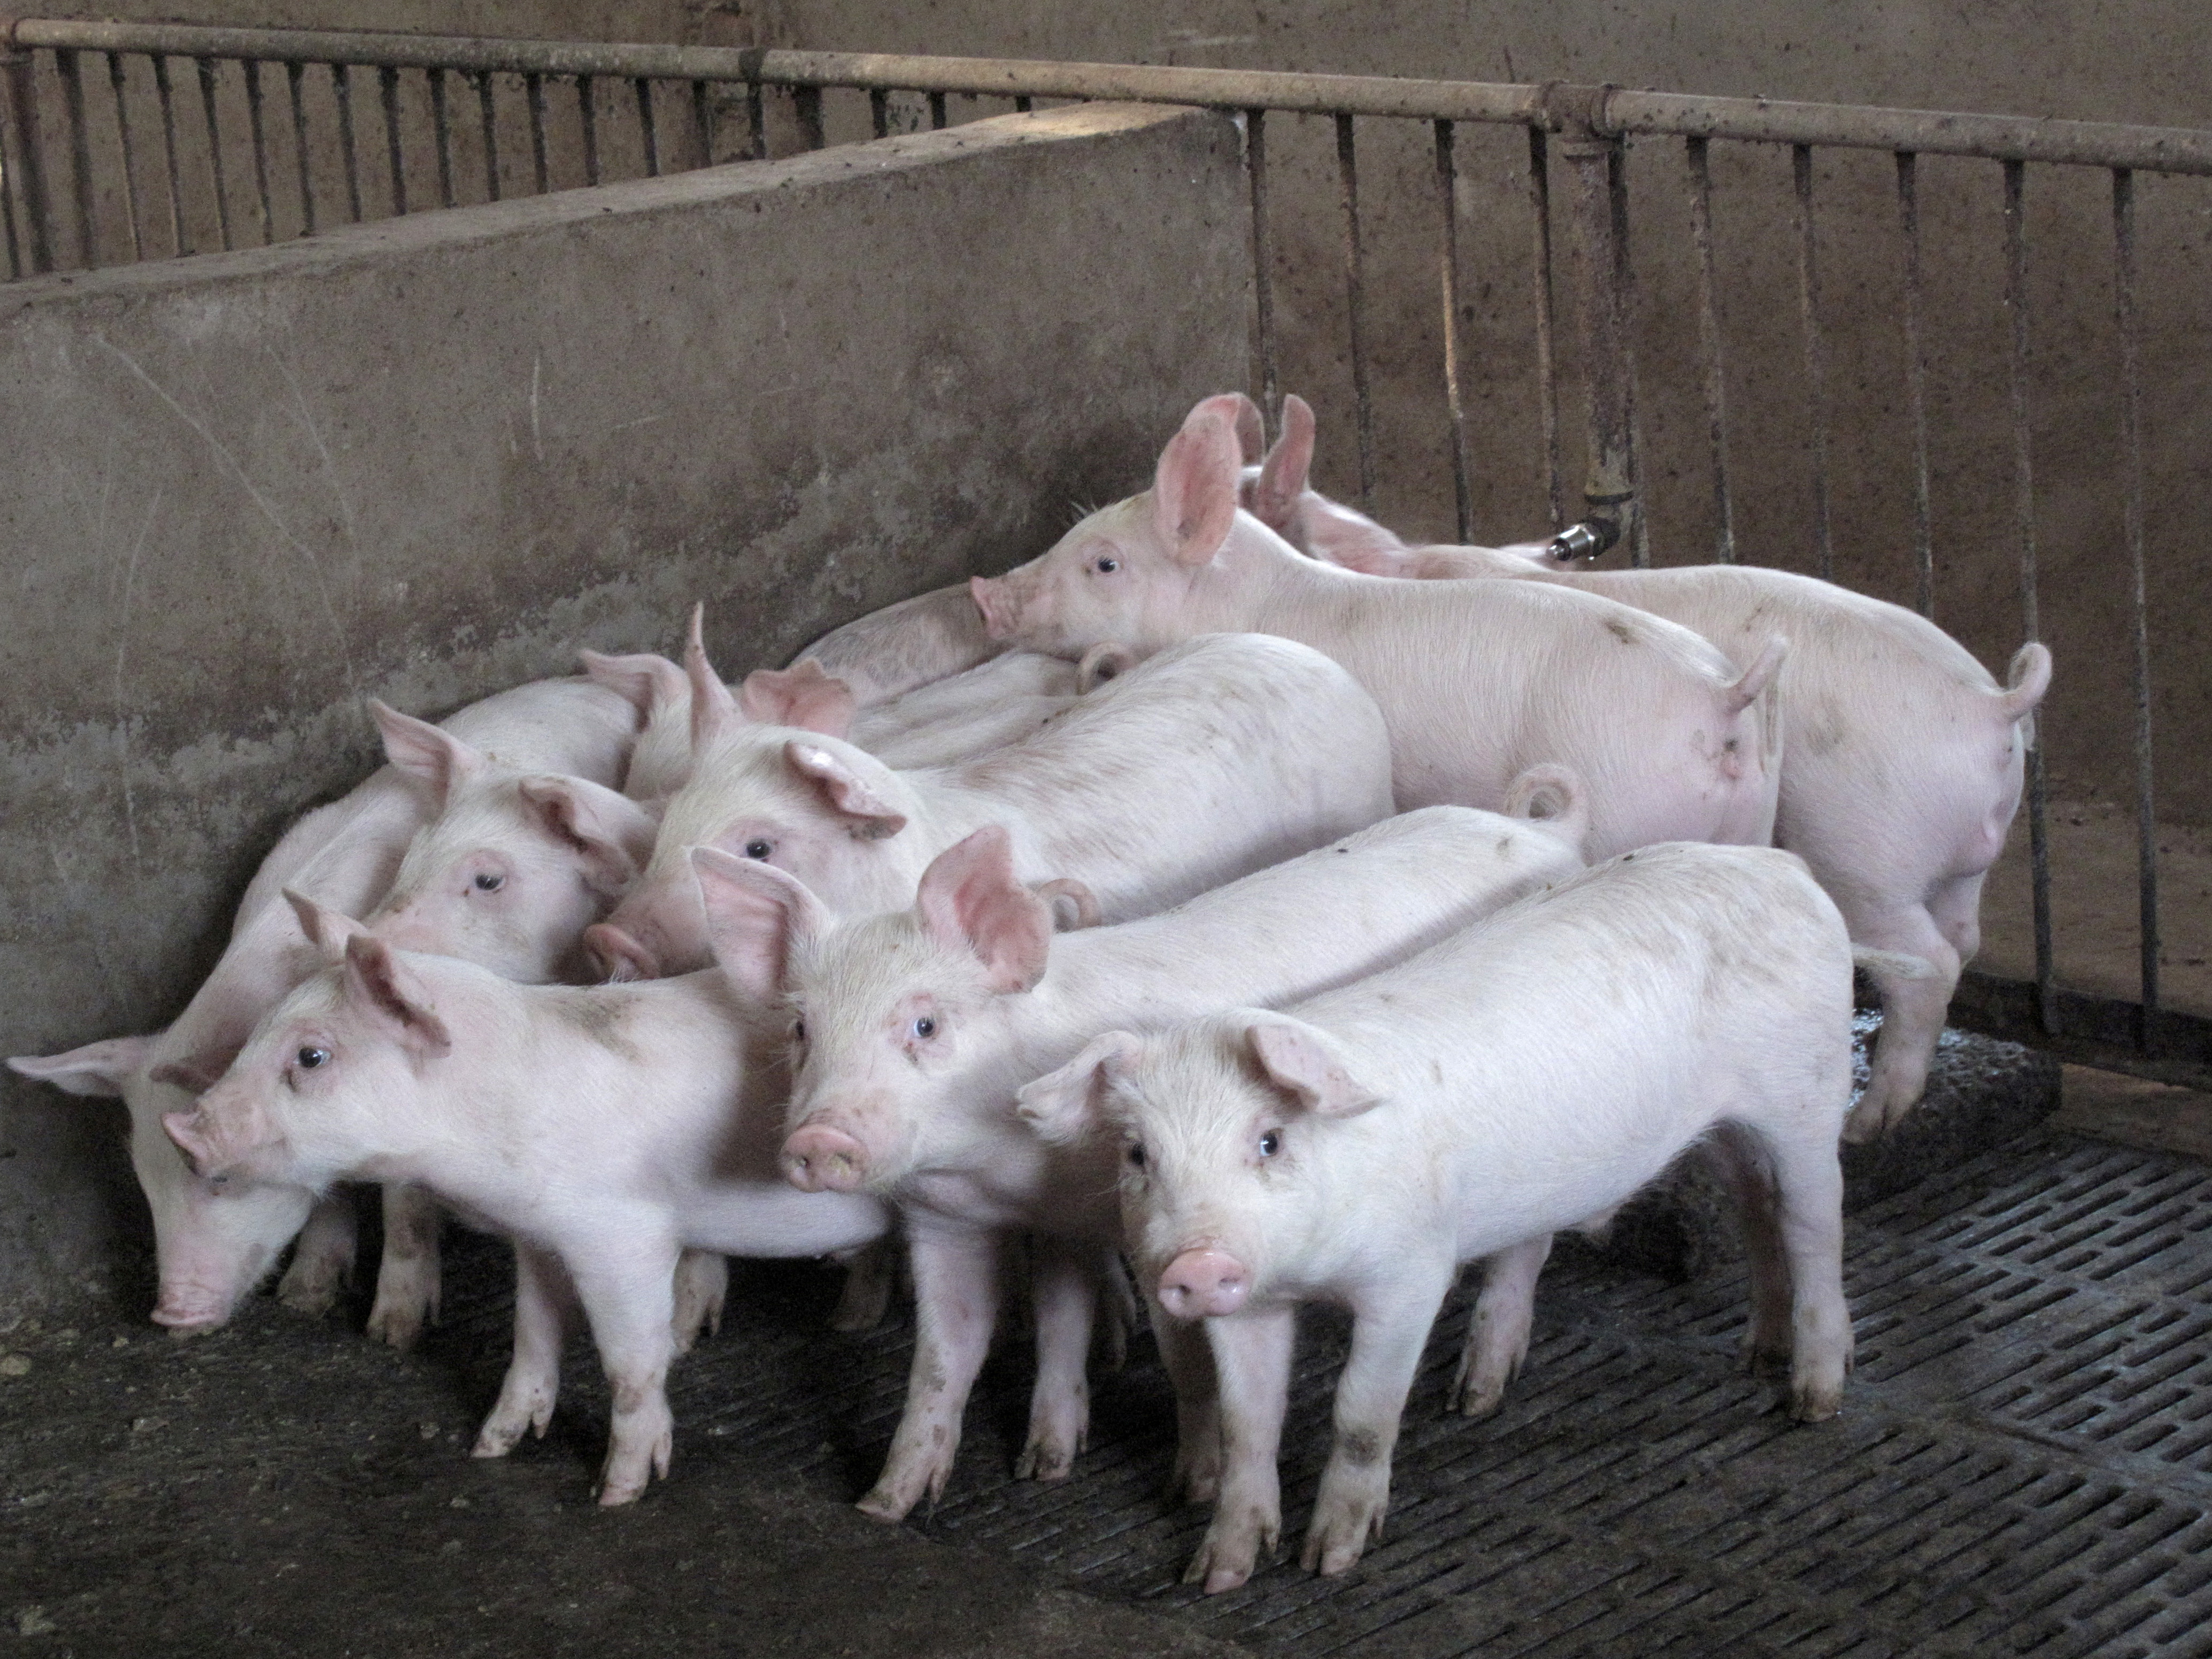 Pigs are seen at a farm in Neihuang county, Henan province, China, September 12, 2016. Picture taken September 12, 2016. REUTERS/Dominique Patton/File Photo